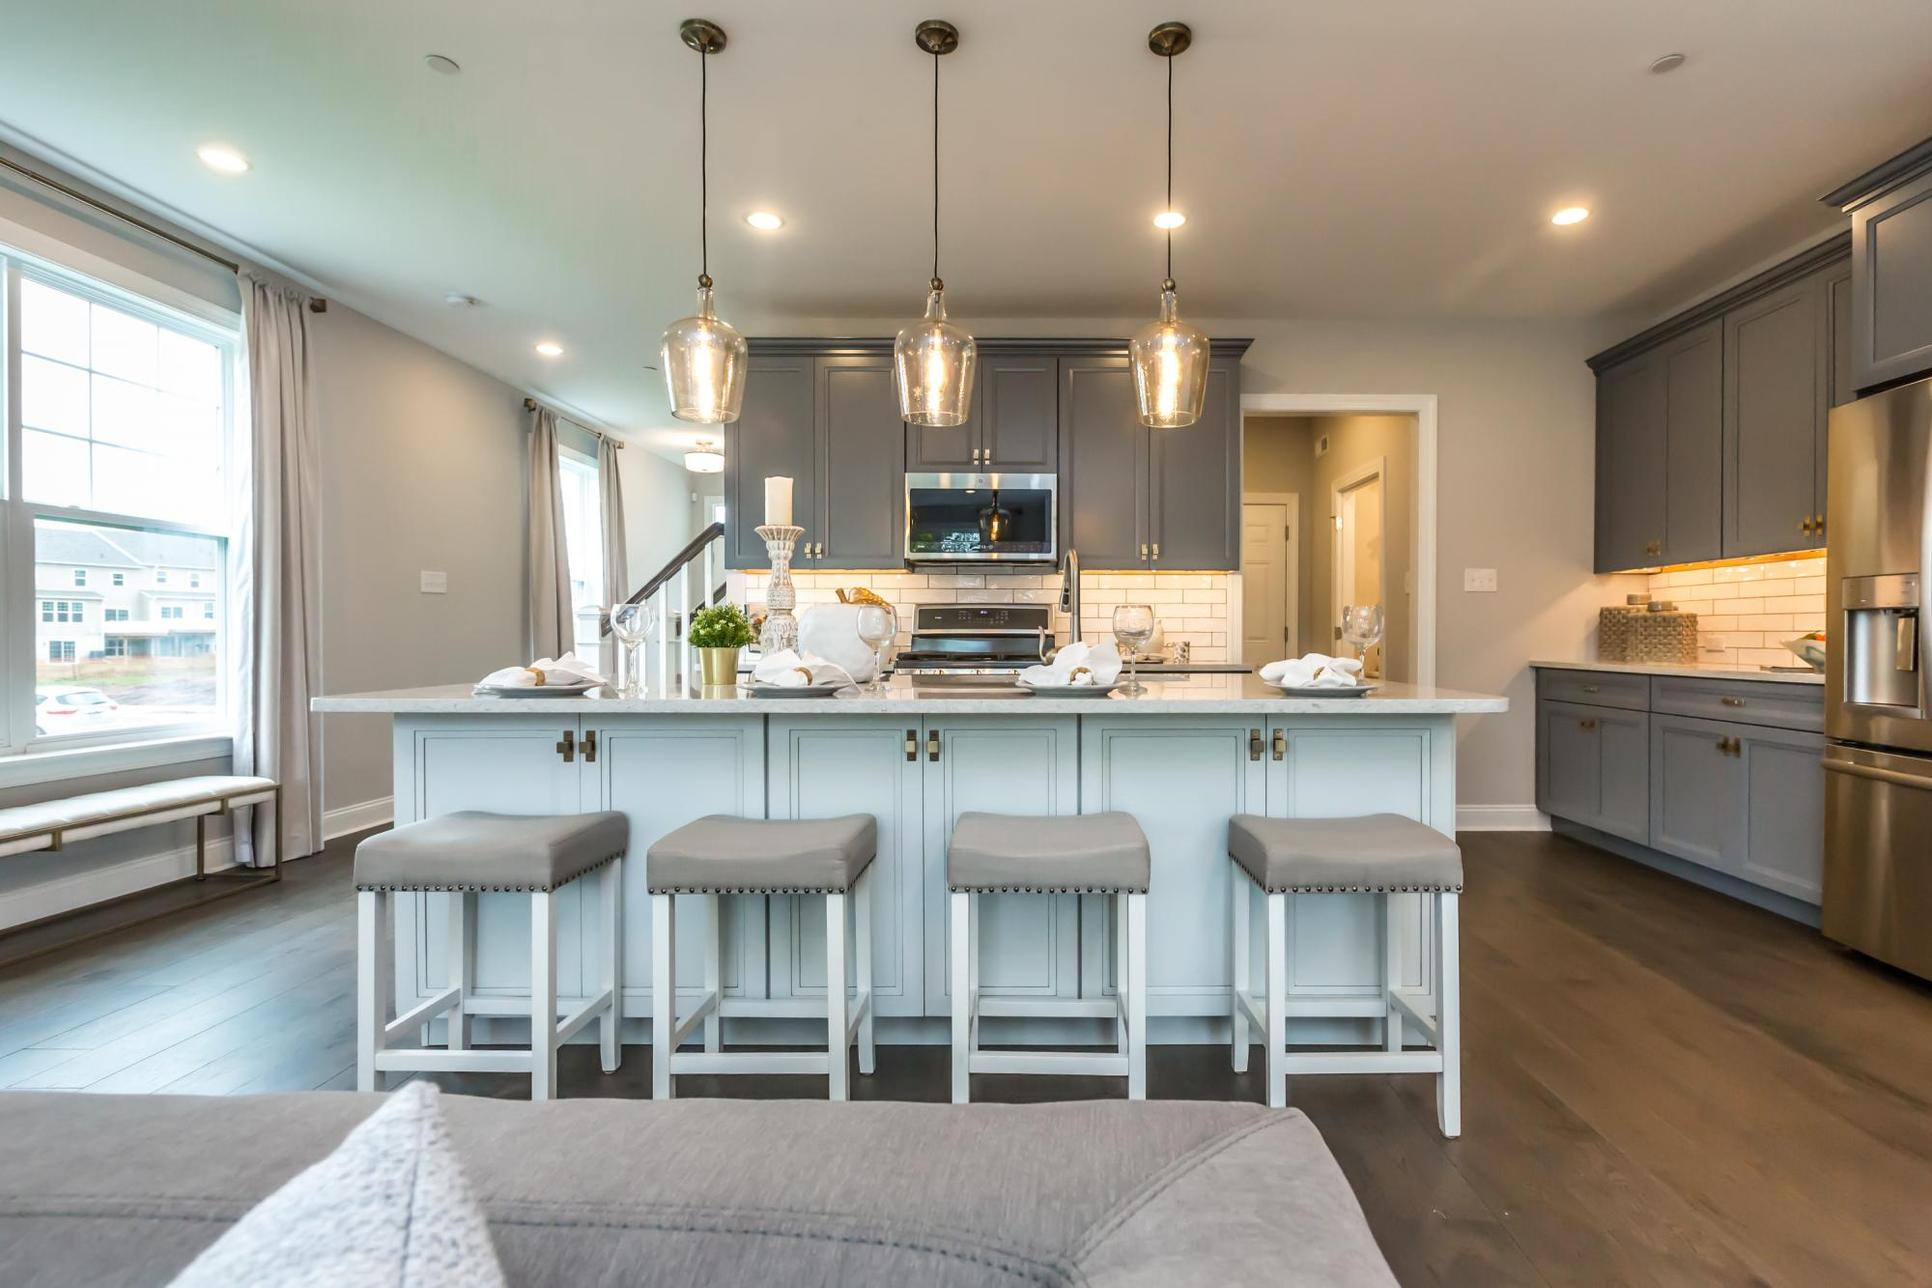 Brightly lit Kitchen with extended kitchen island with décor, a microwave and gray upper cabinets:Enclave at Ridgewood, Sutton Grand, Townhomes, Kitchen